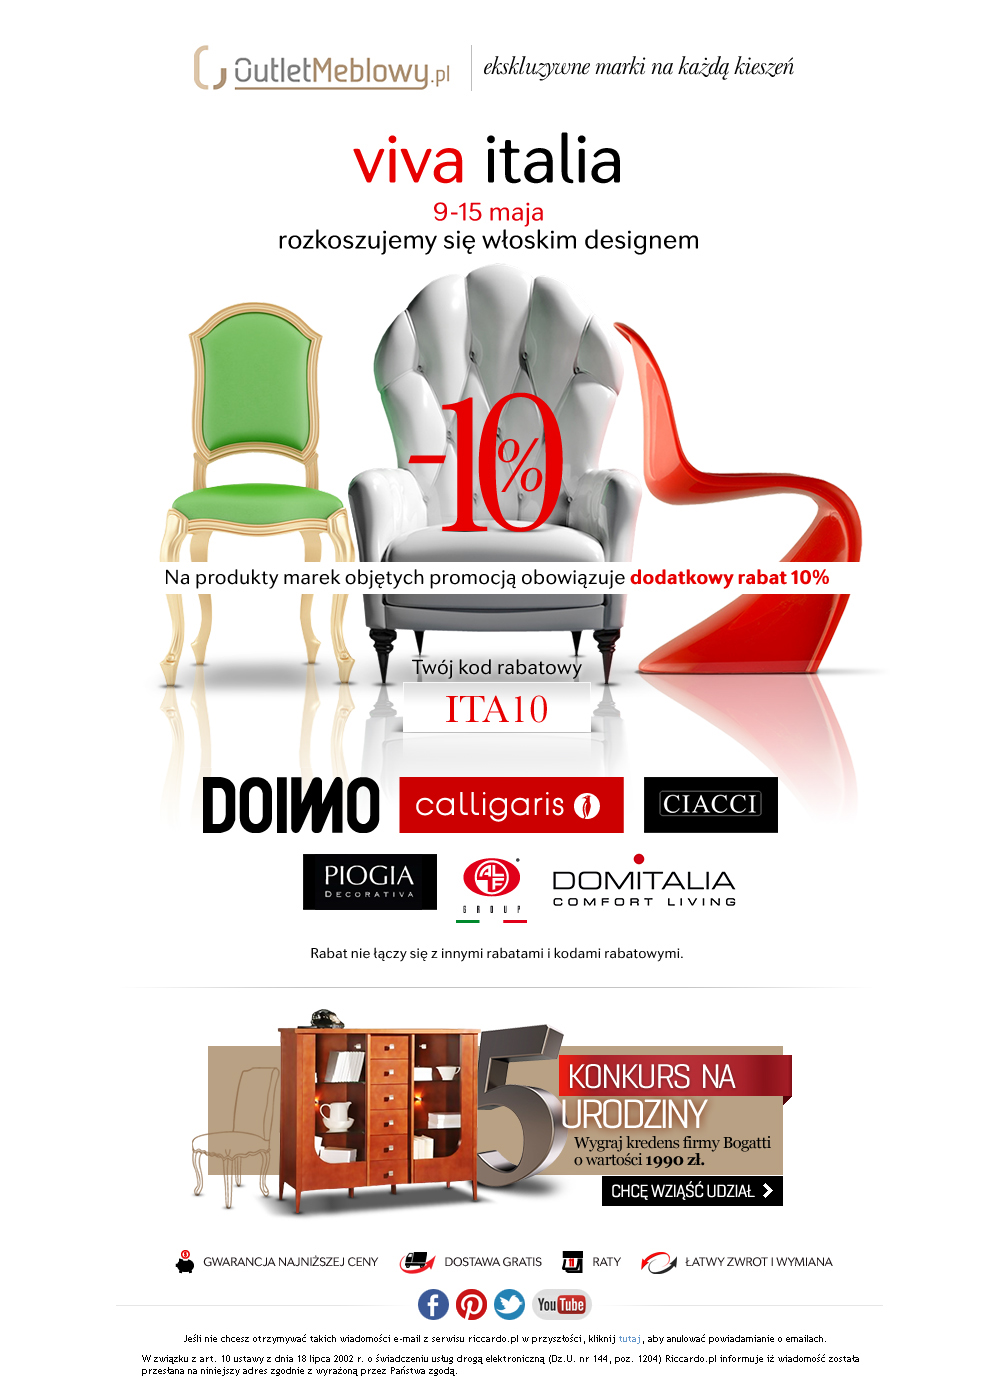 graphic design  Advertising  emailing Ecommerce